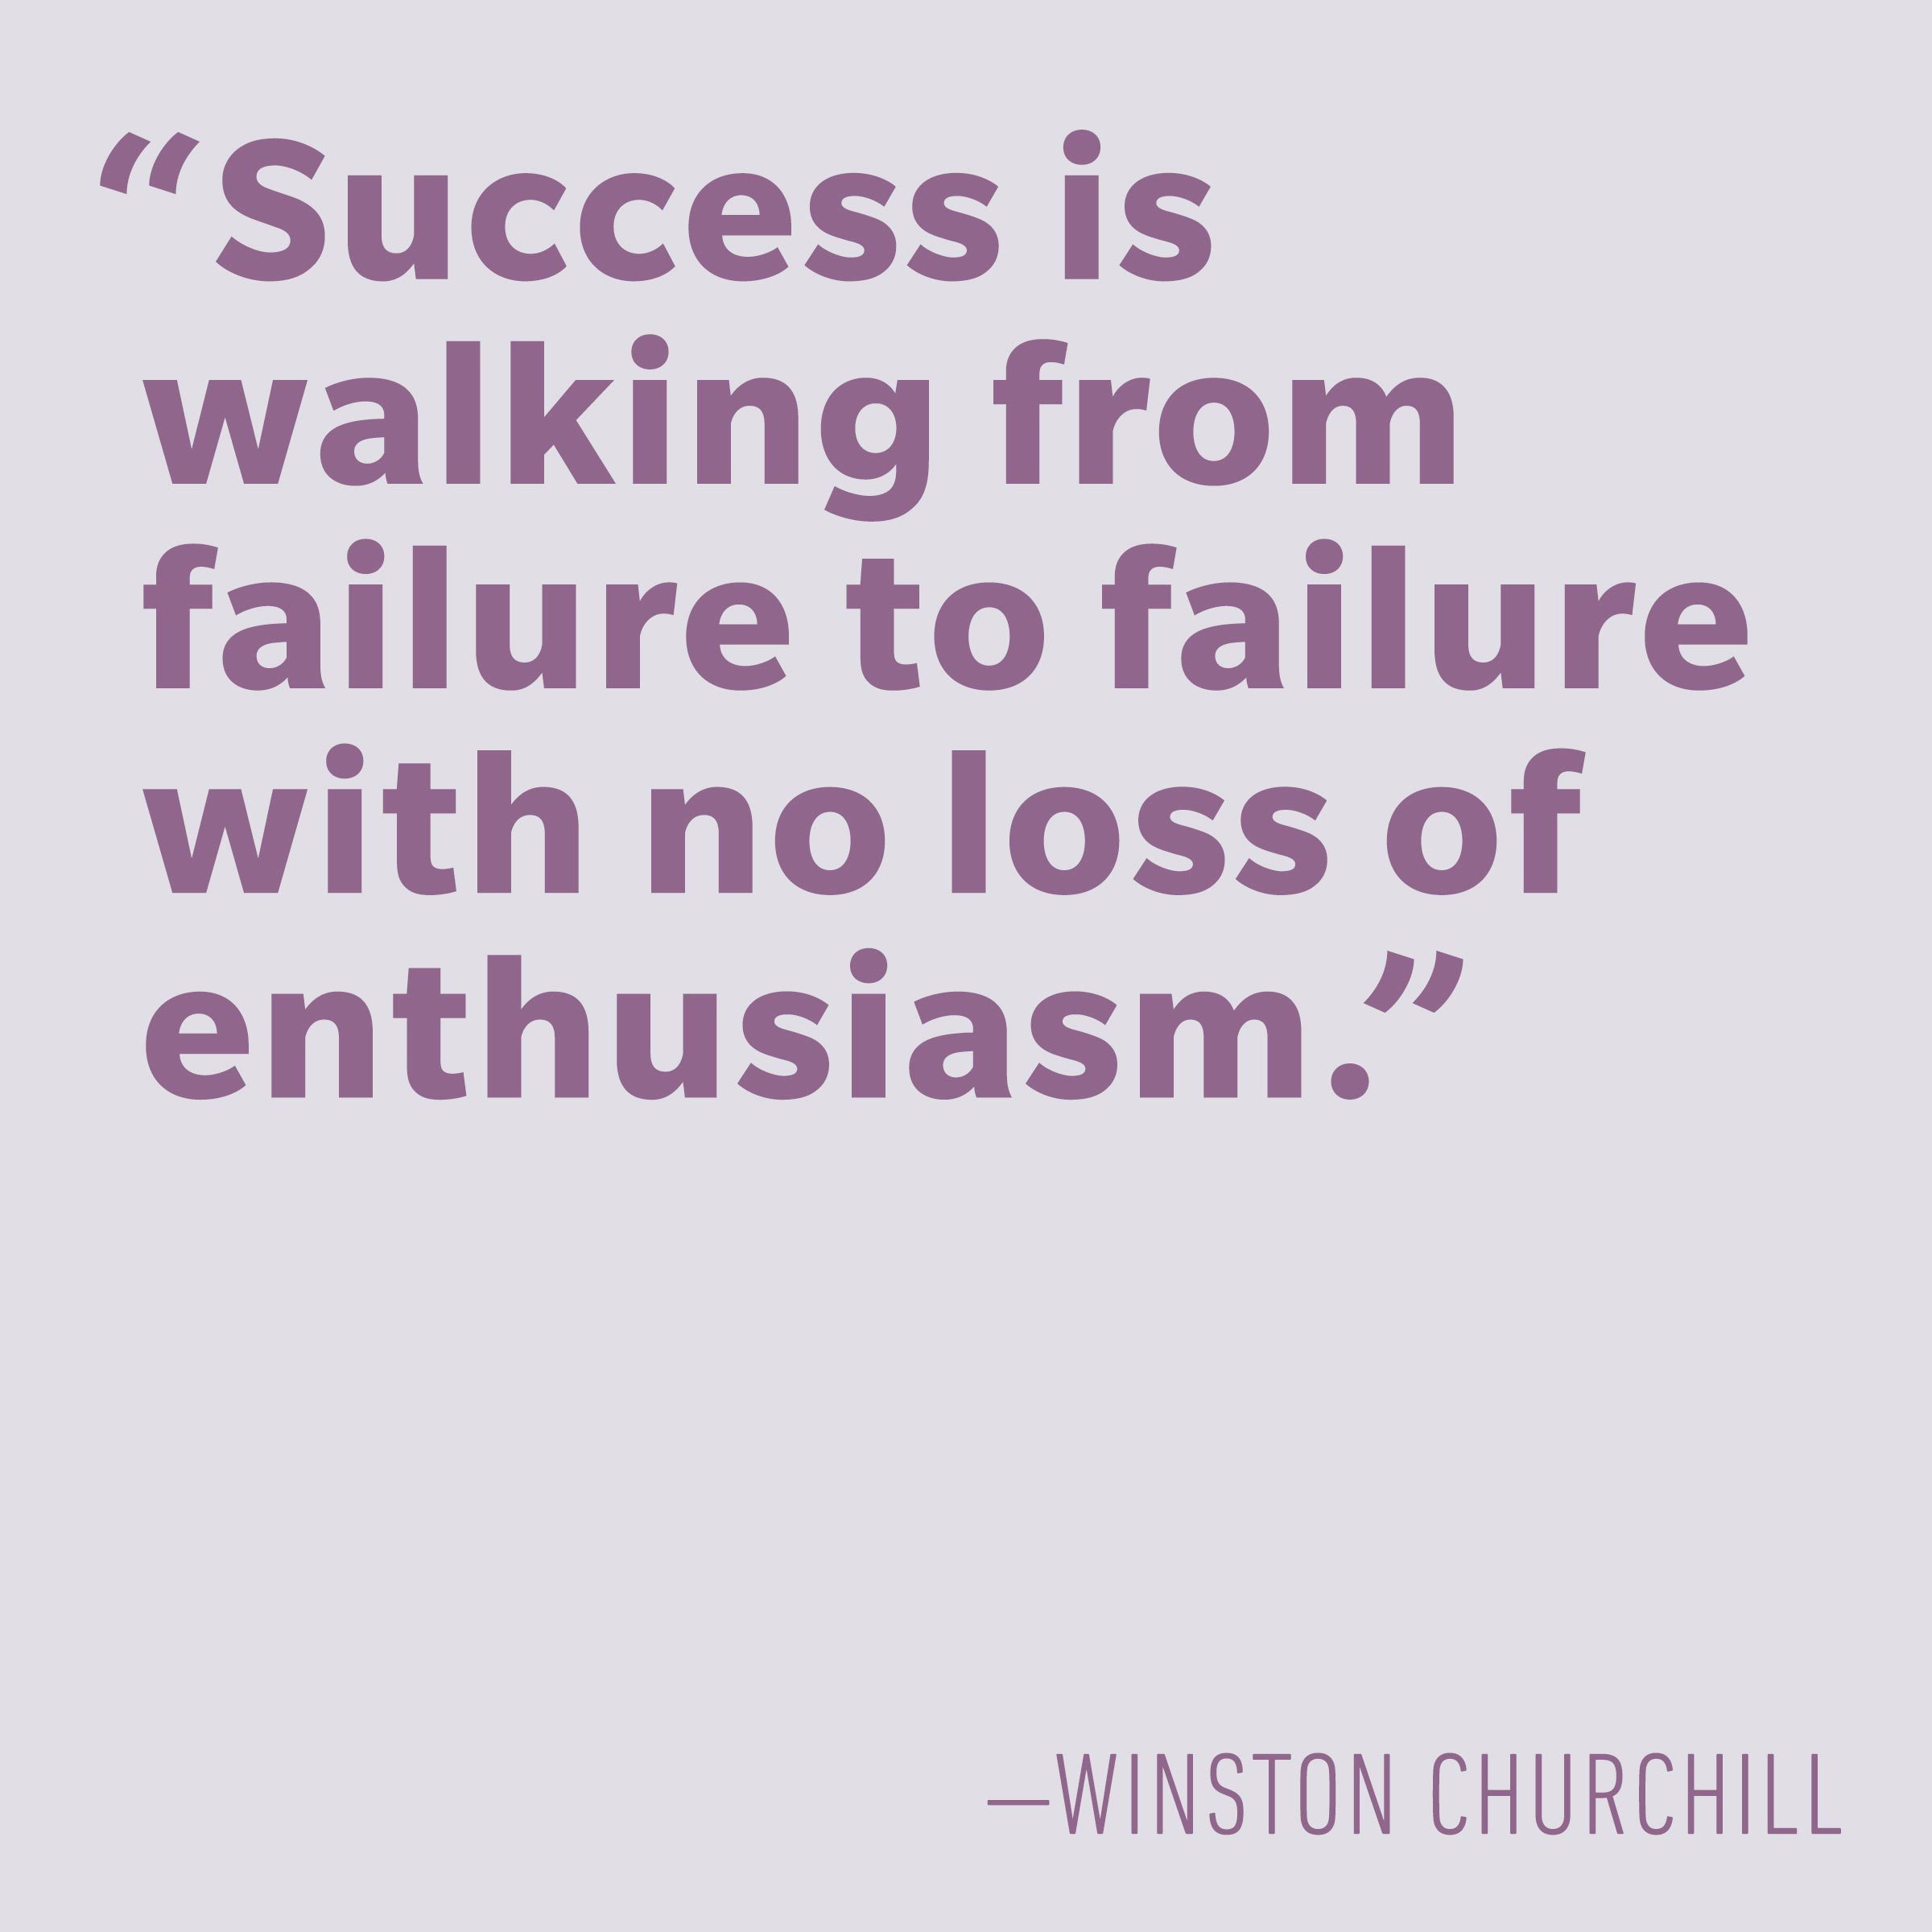 Motivational quotes - Winston Churchill